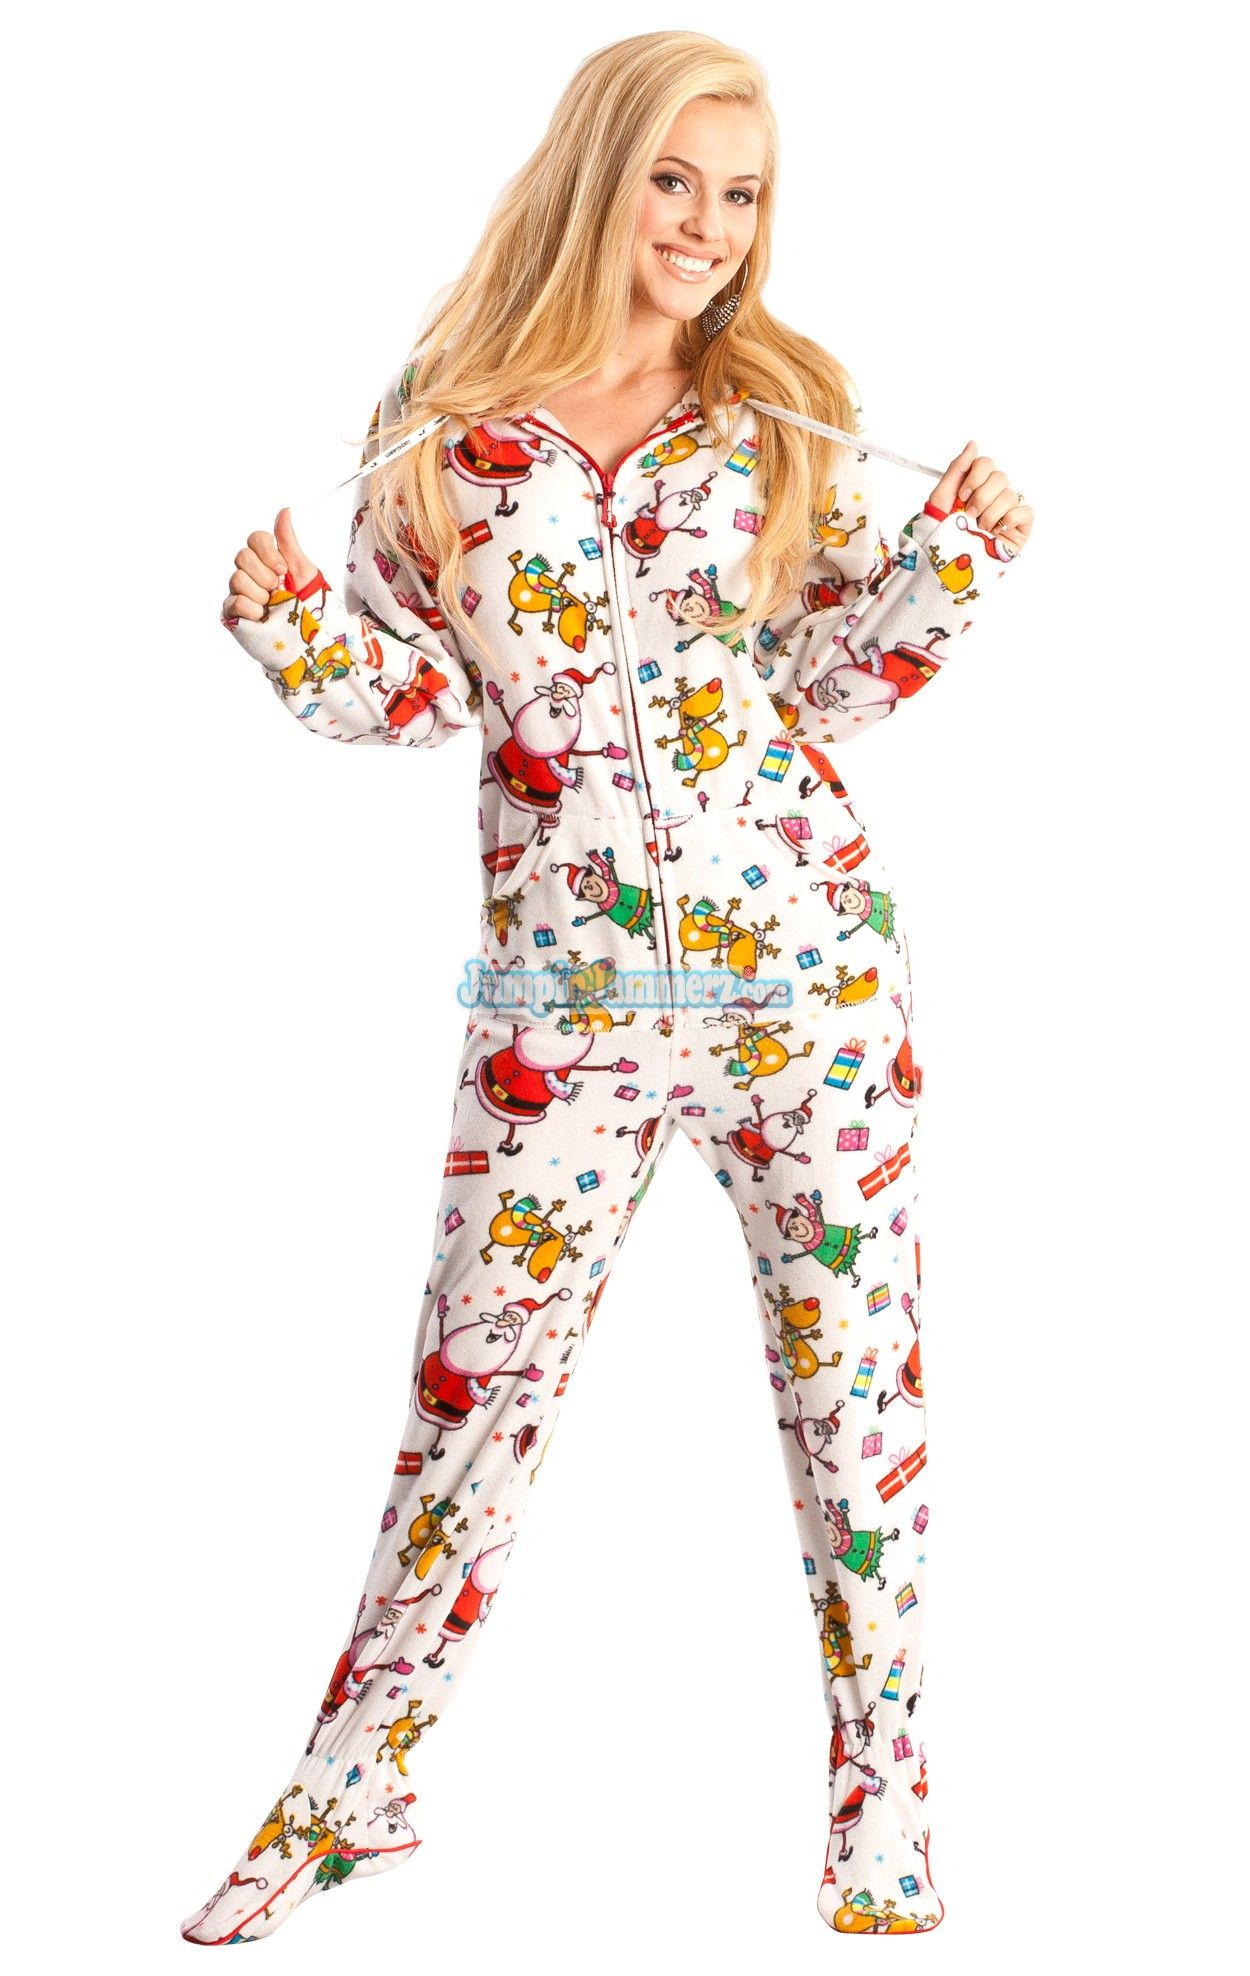 Holiday Pajamas for the Whole Family. Looking for great holiday pajamas, robes, and slippers? You have come to the right place. We carry a wide selection of men's, women's, boys, girls, and toddler holiday sleepwear.